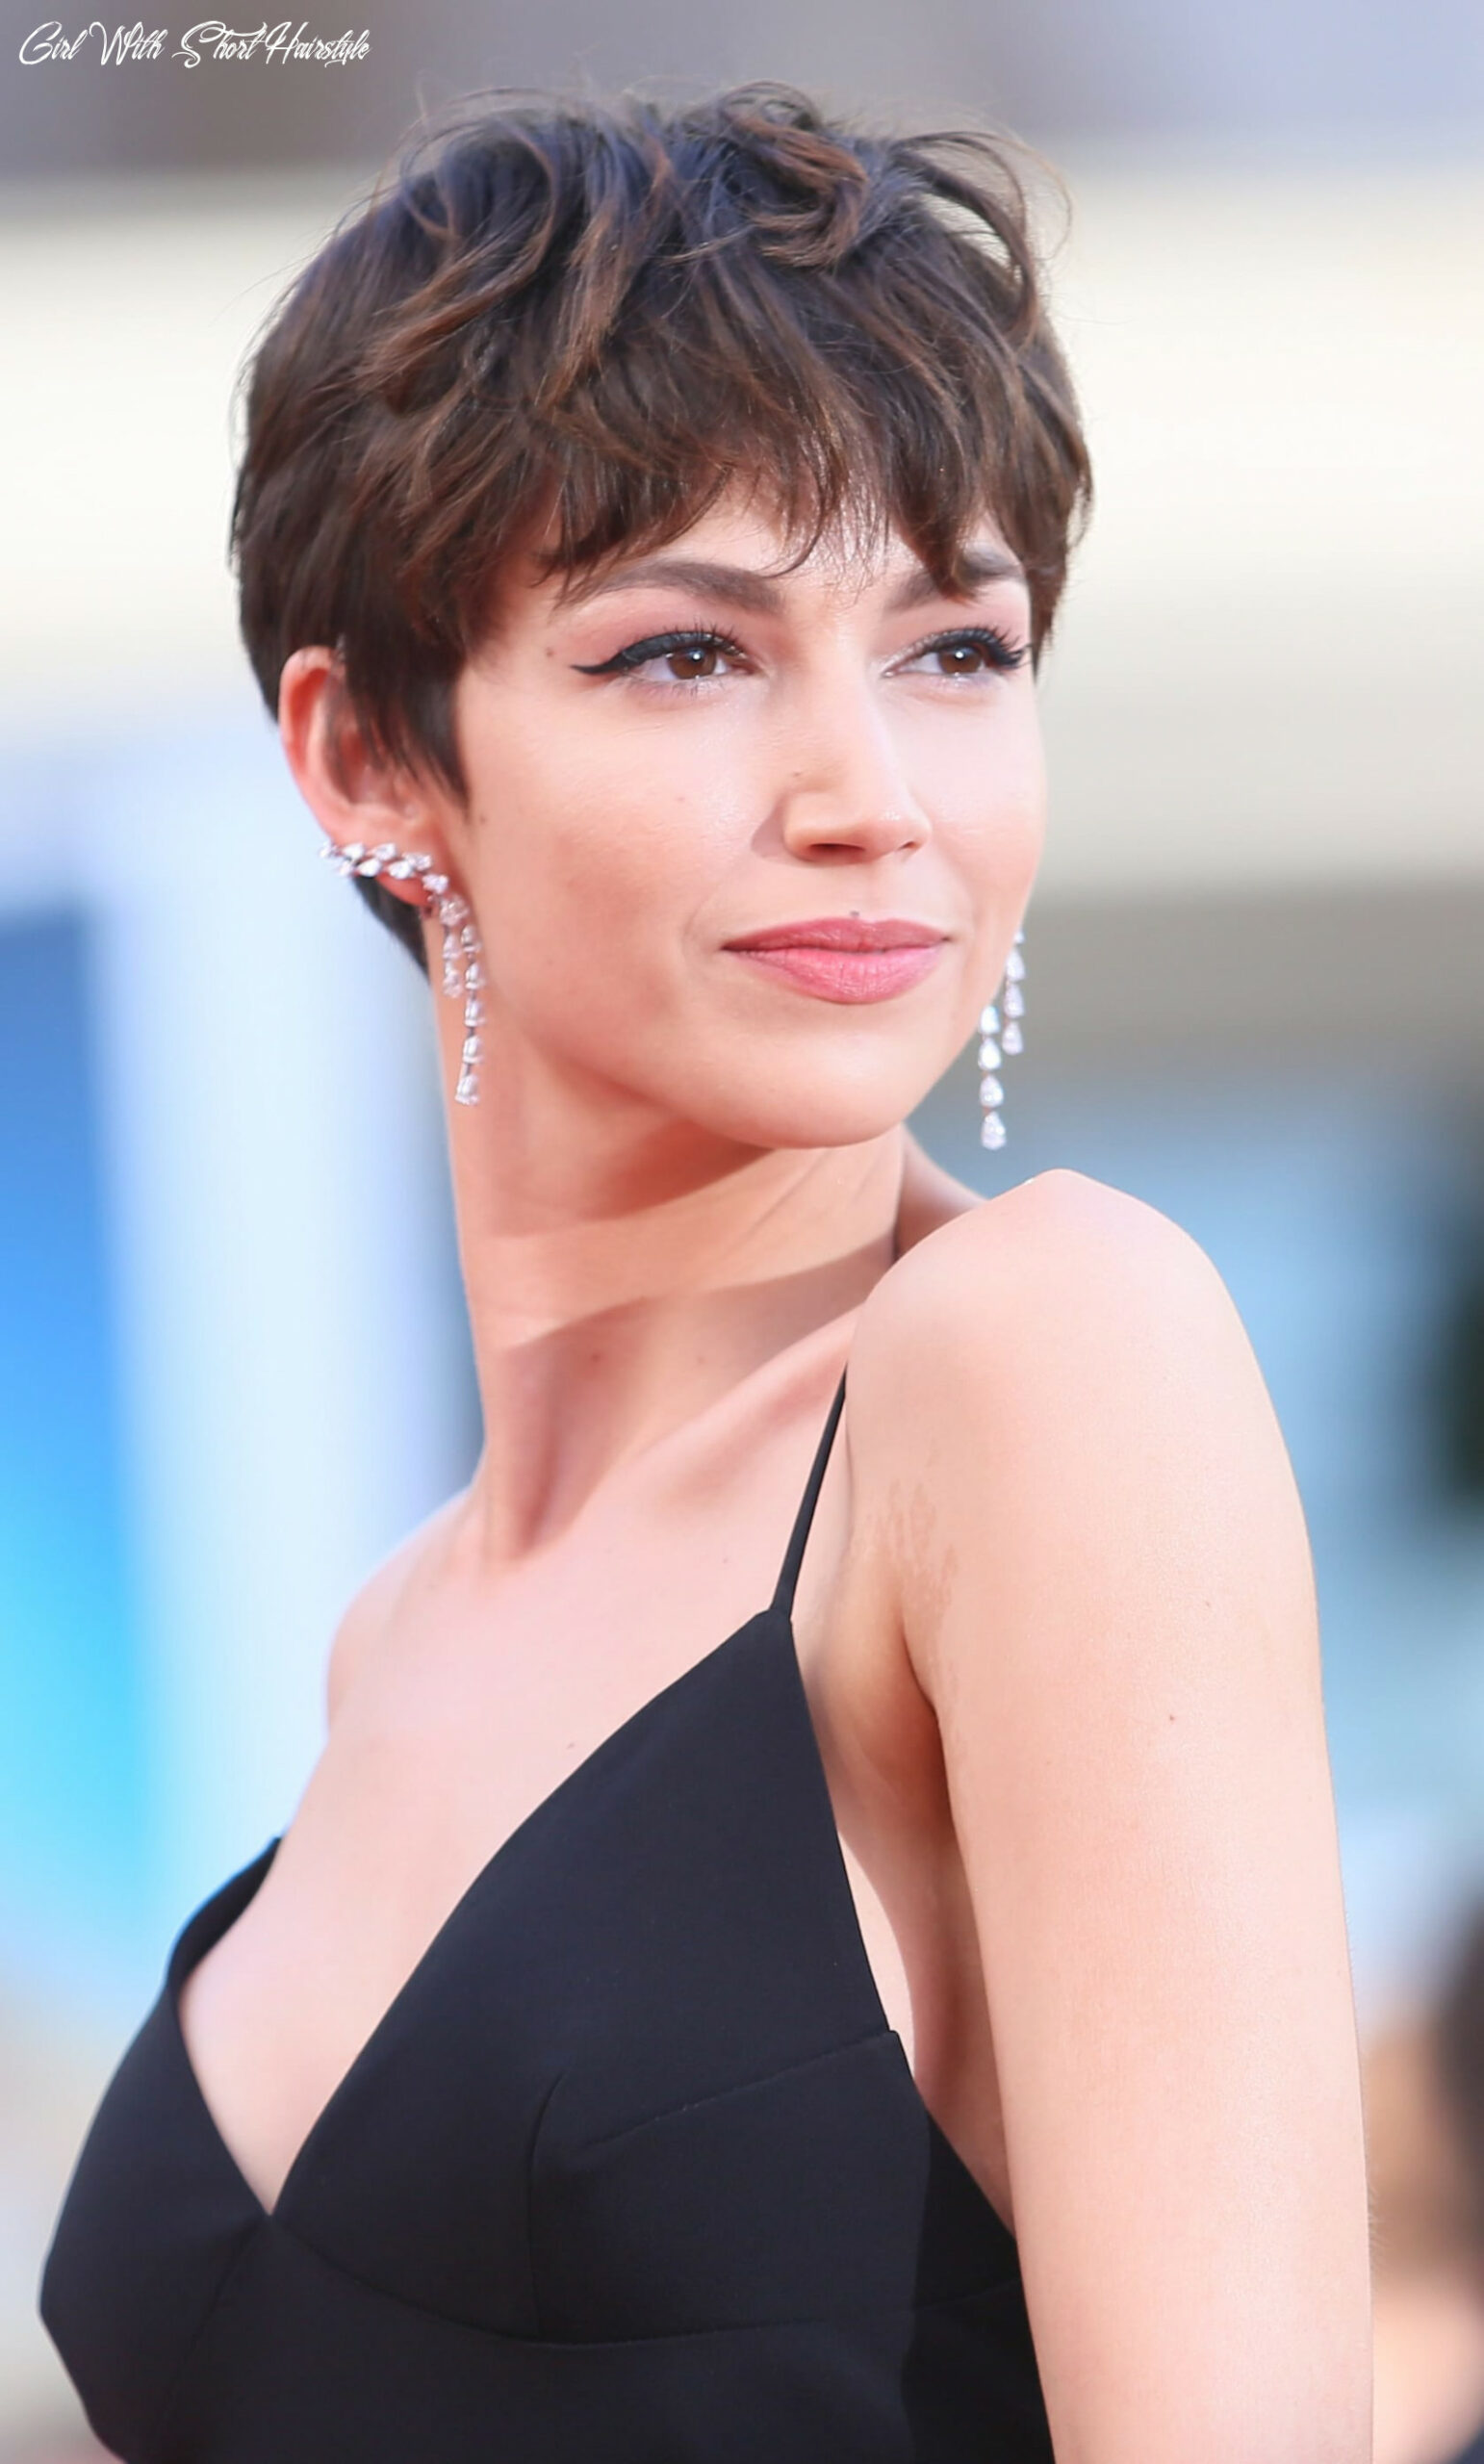 12 latest short hairstyles for women for 12 girl with short hairstyle